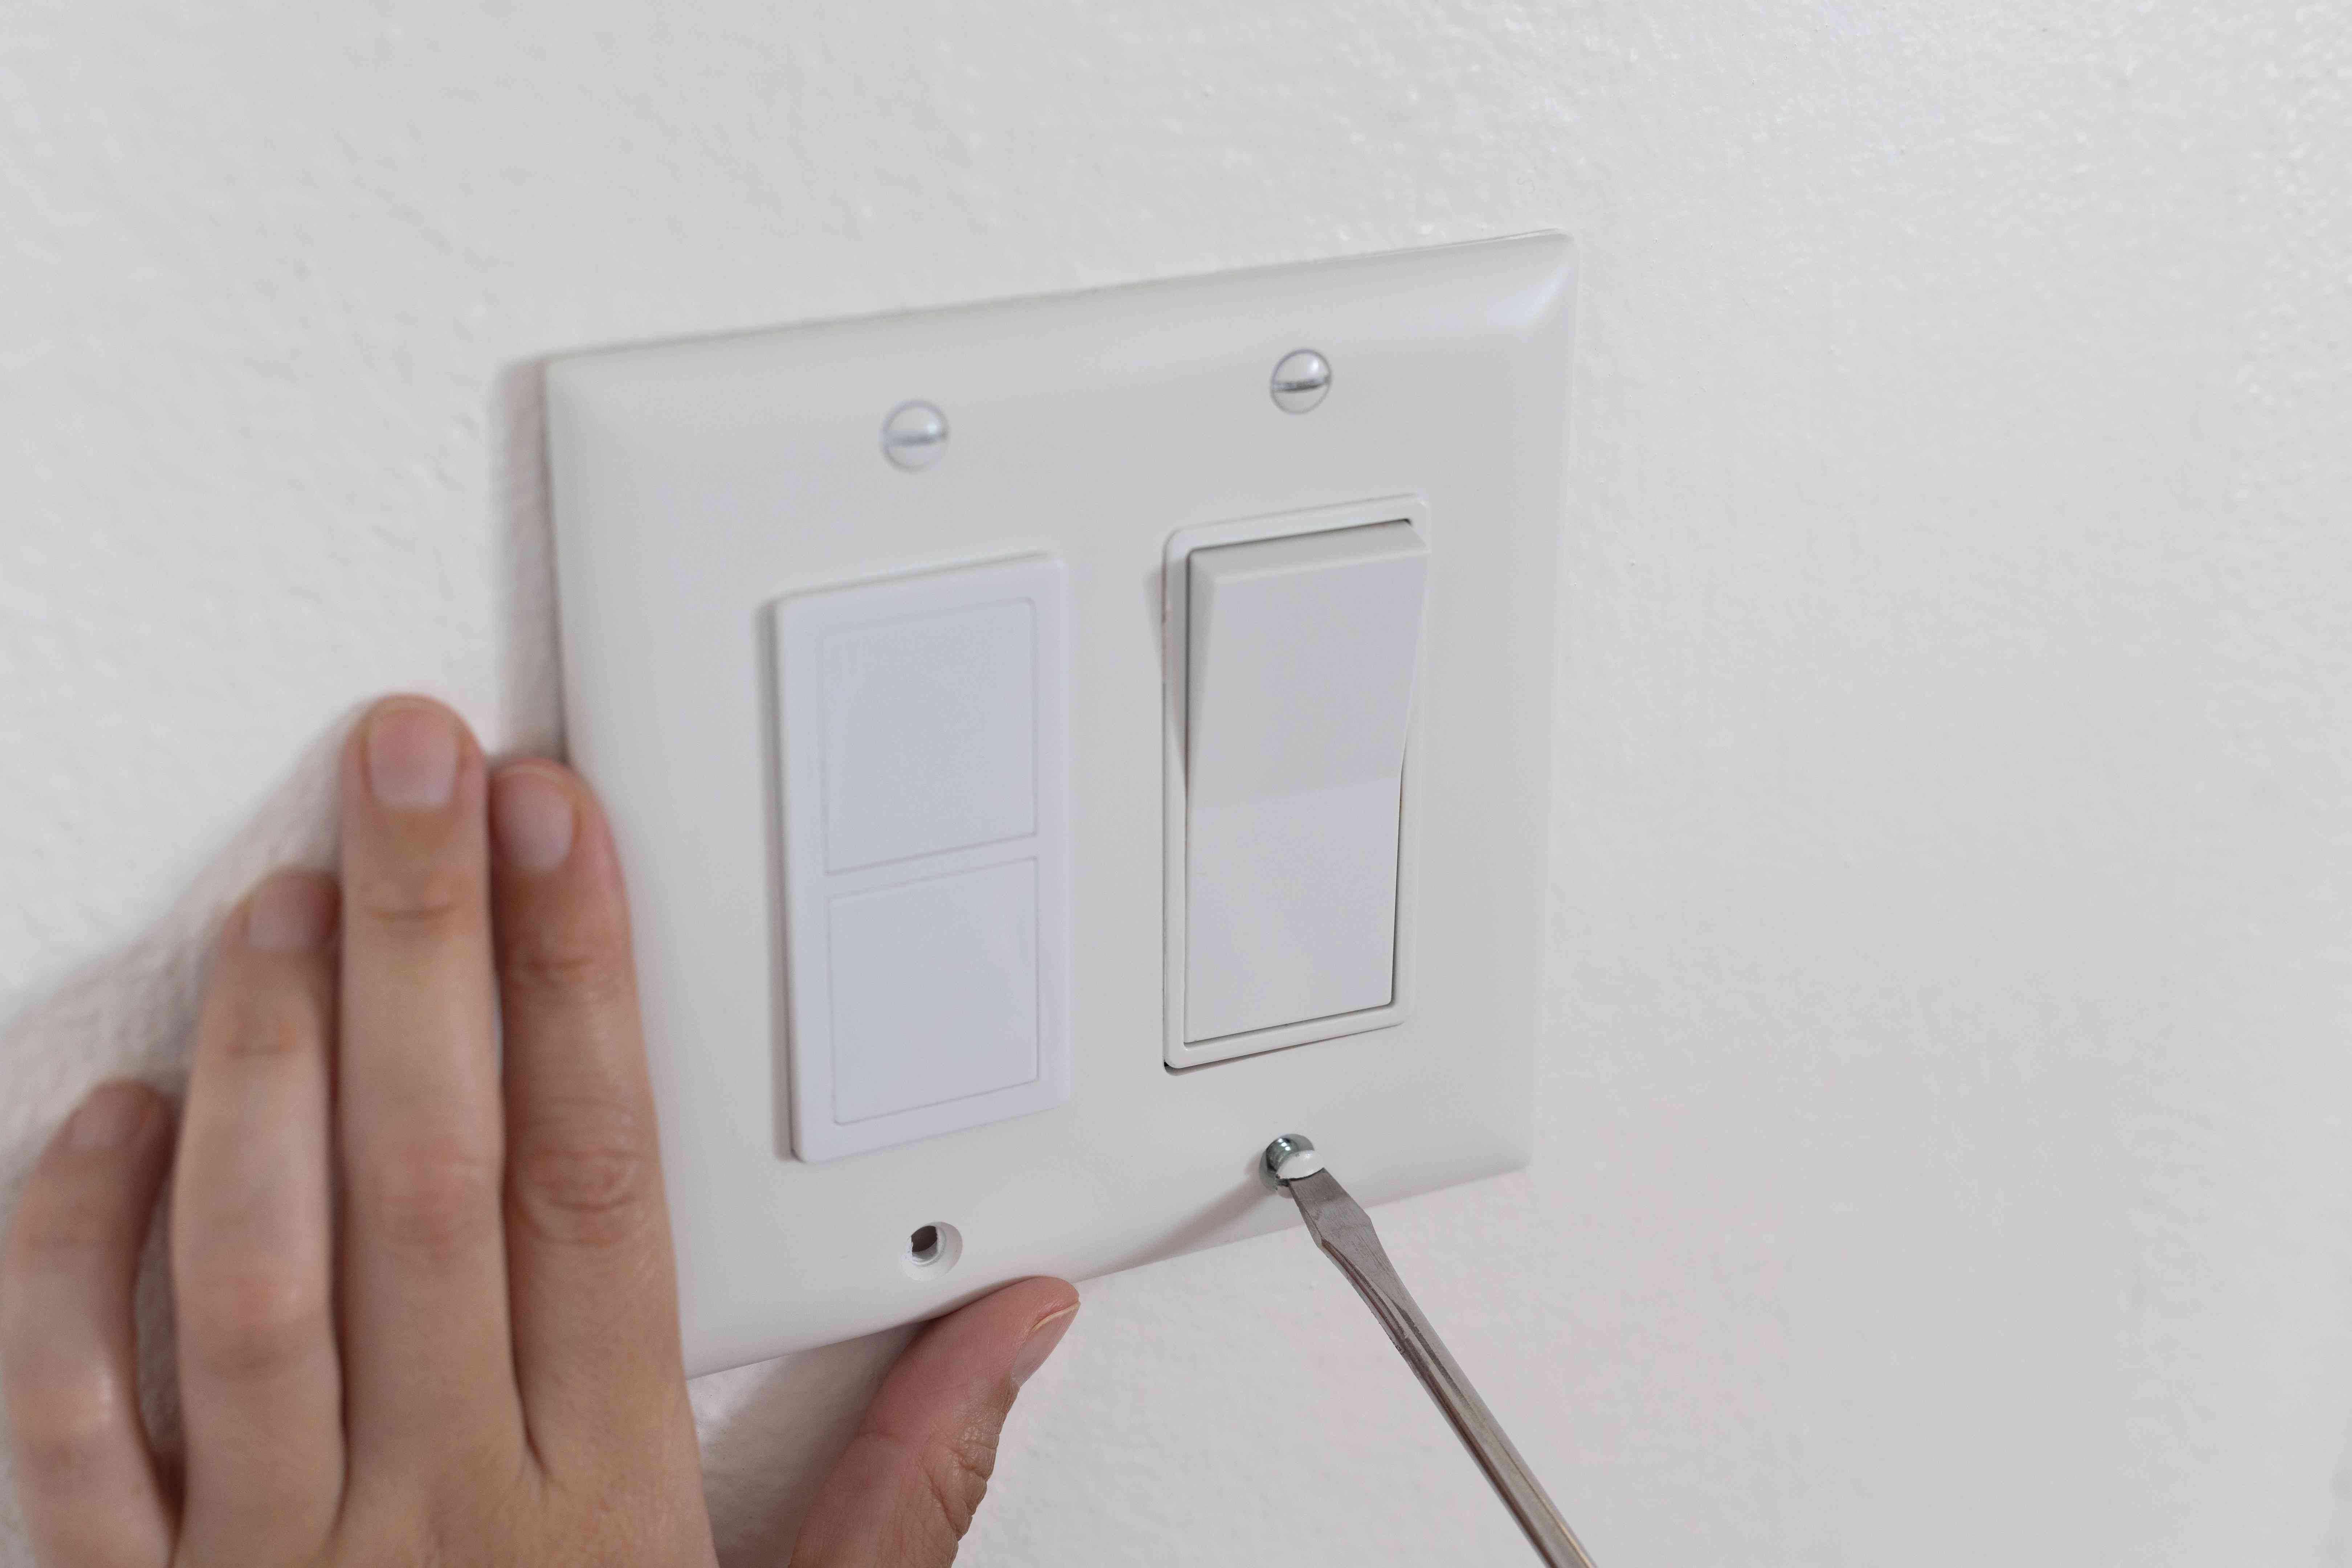 Electrical outlet being removed to insert insulate